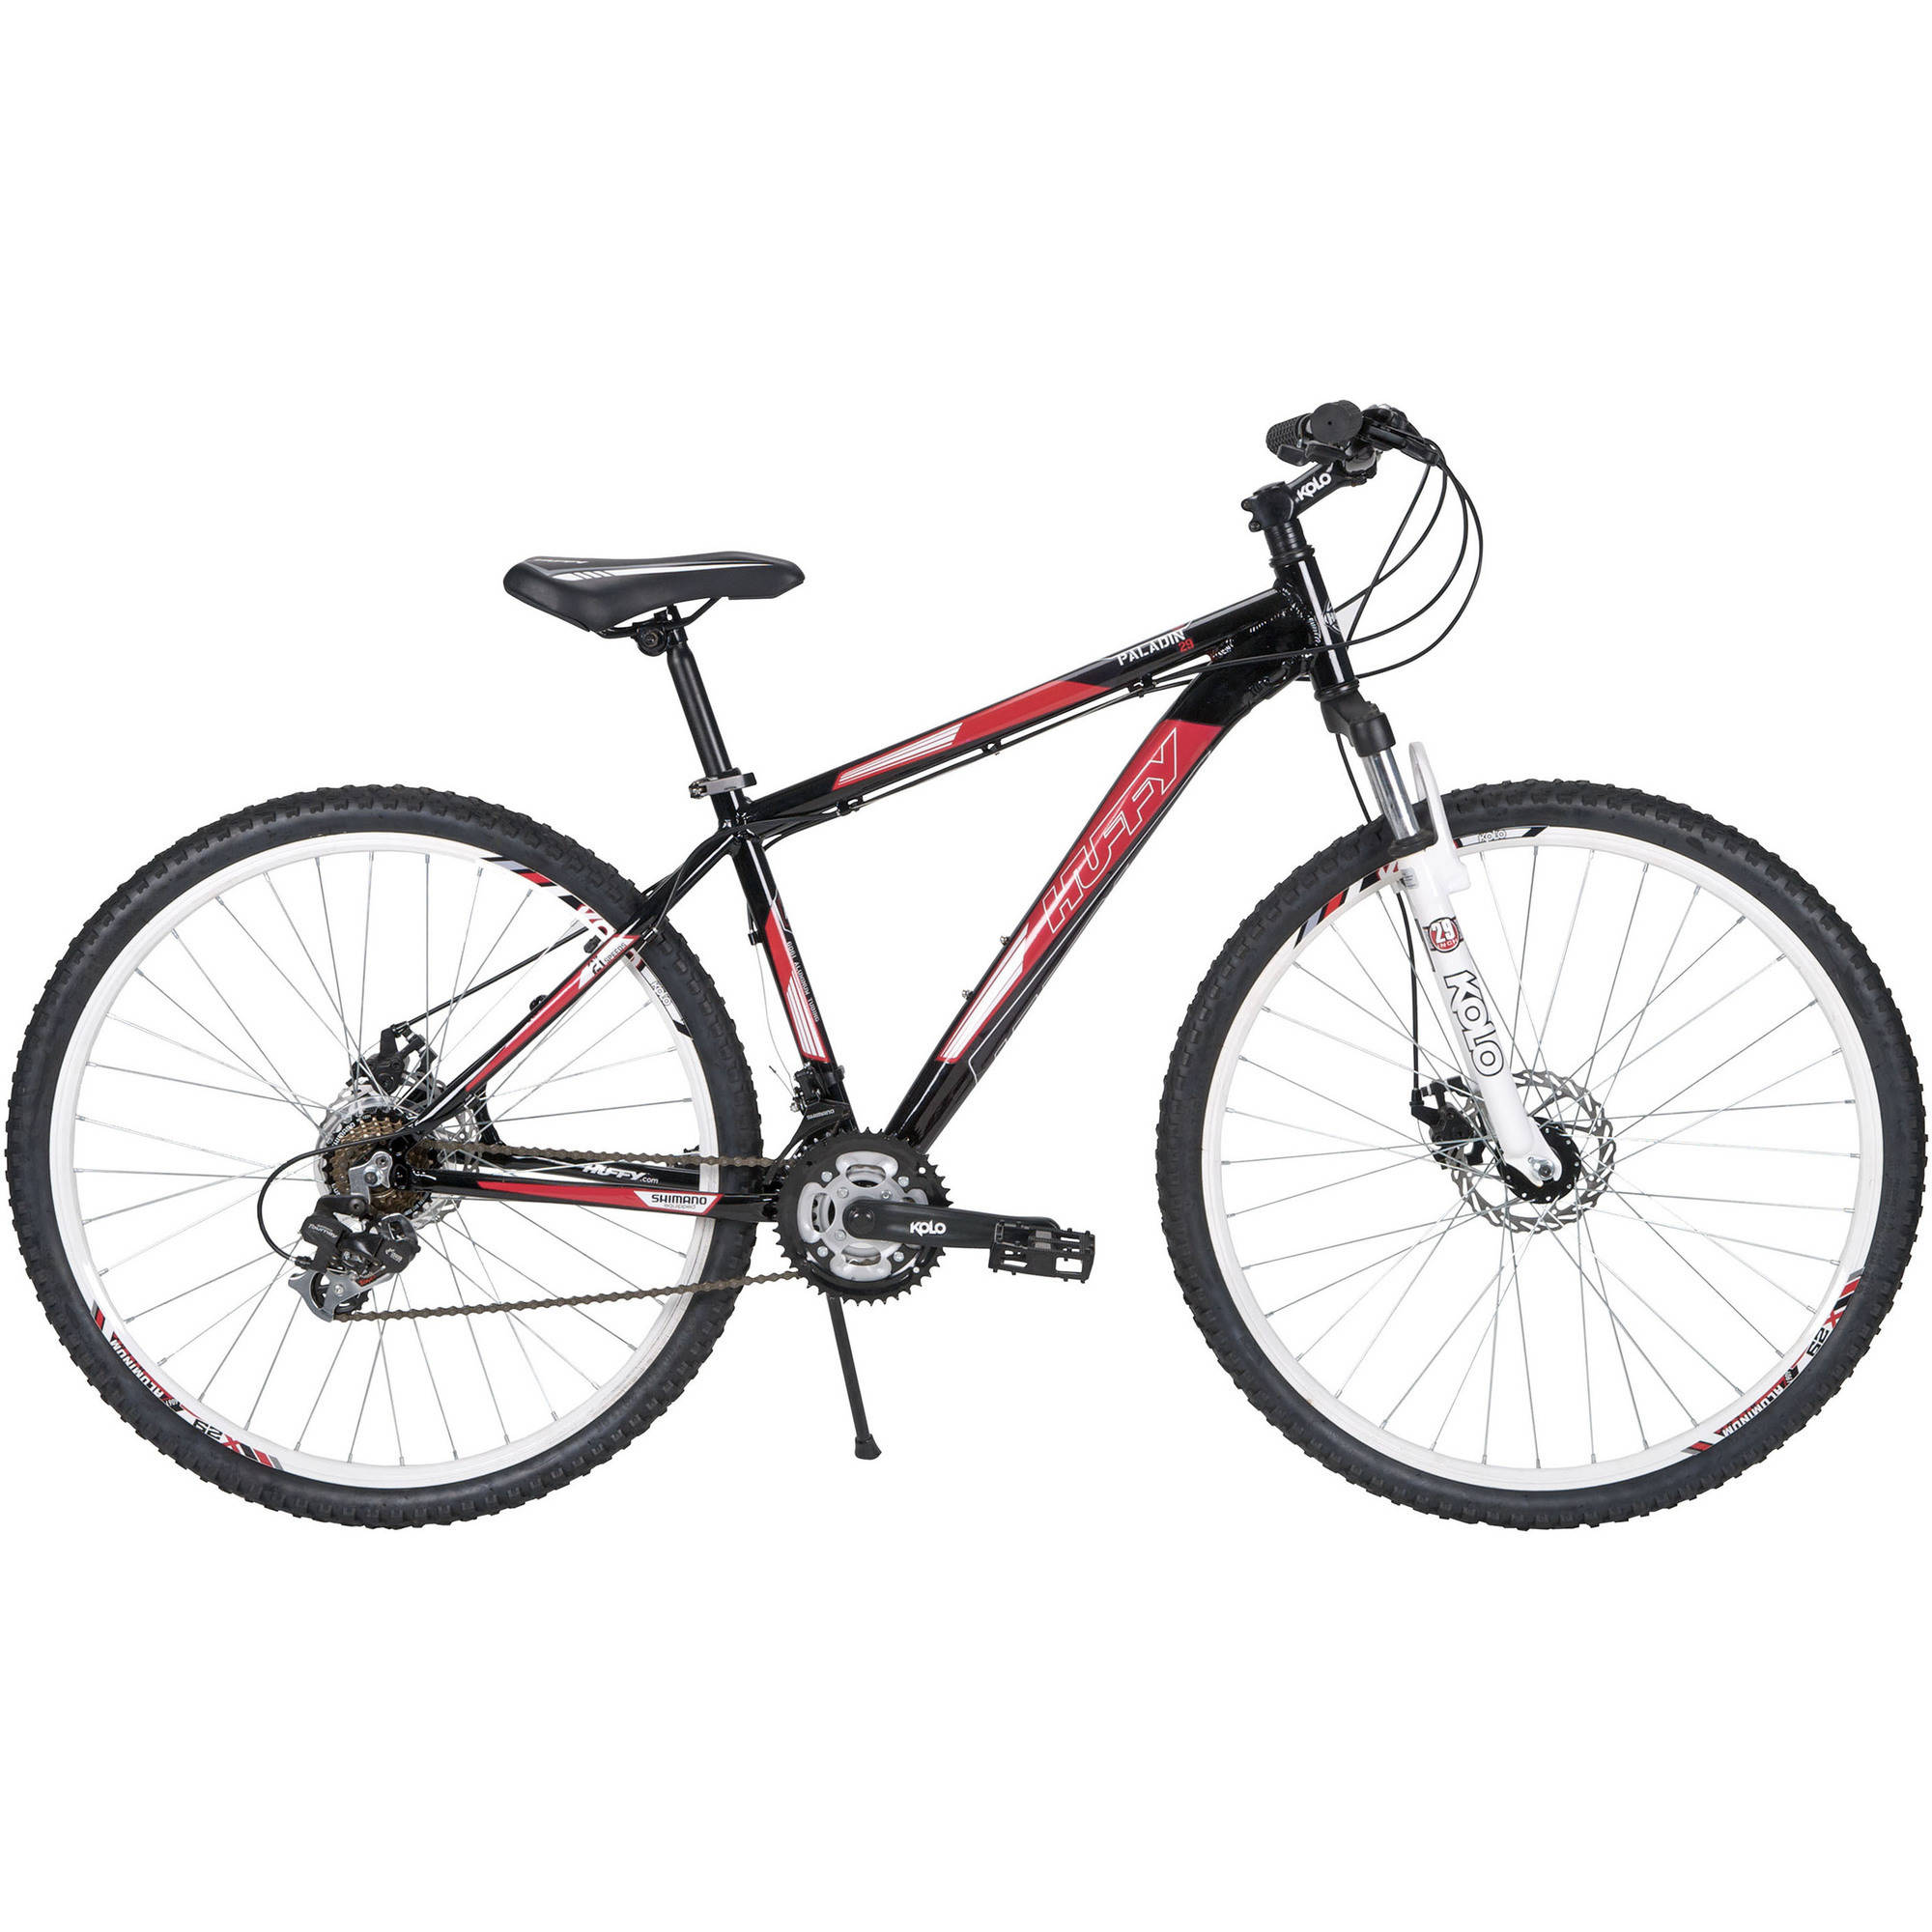 "29"" Huffy Phalanx Men's Mountain Bike, Black"